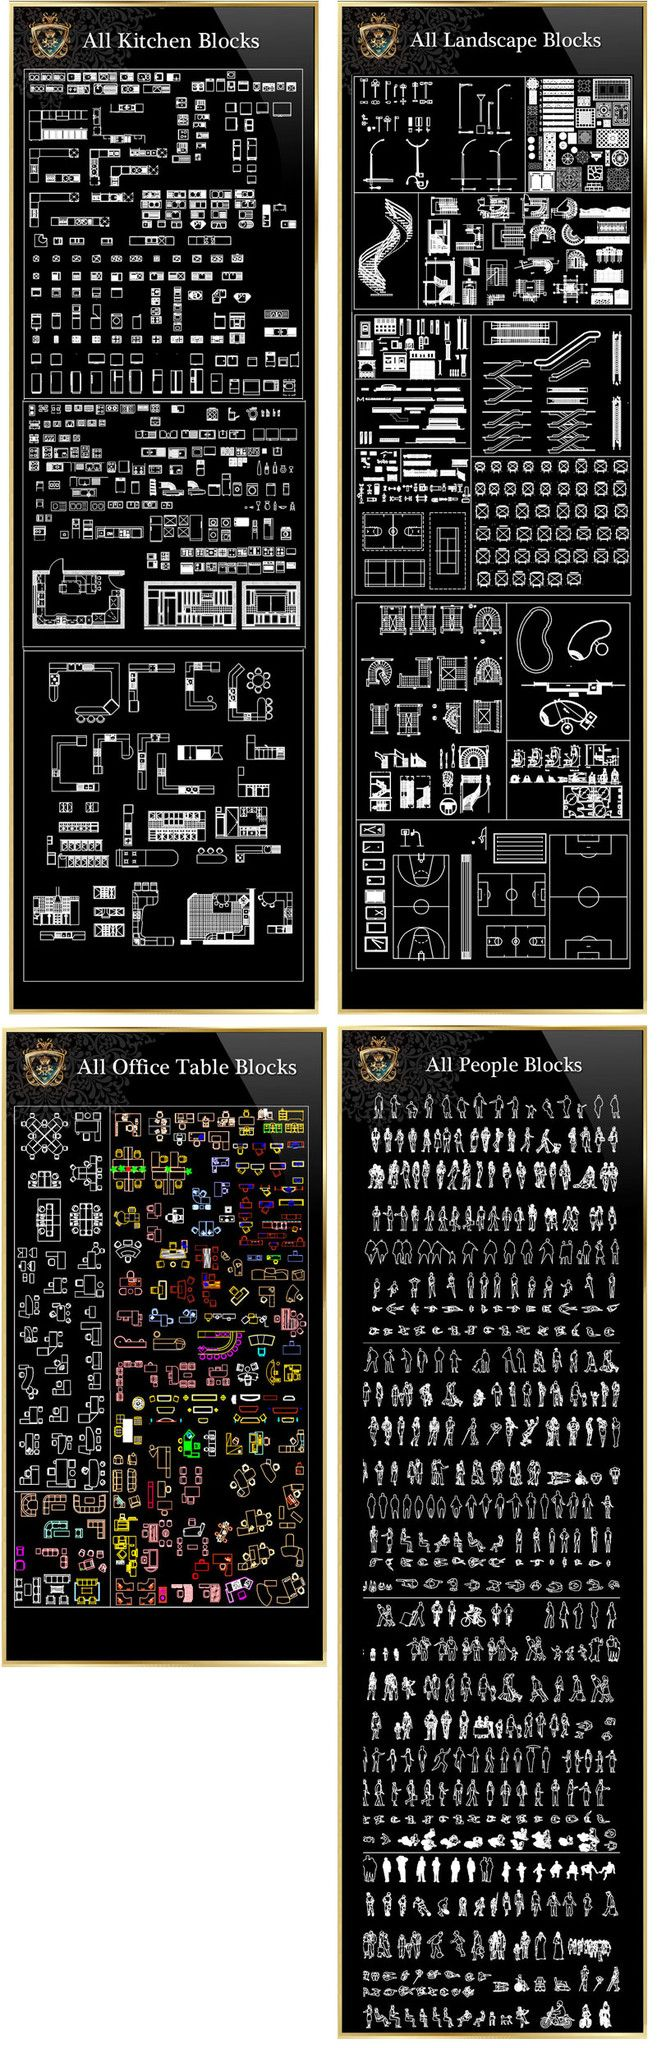 751 best images about 25000 autocad blocks drawings on for Interior design cad free